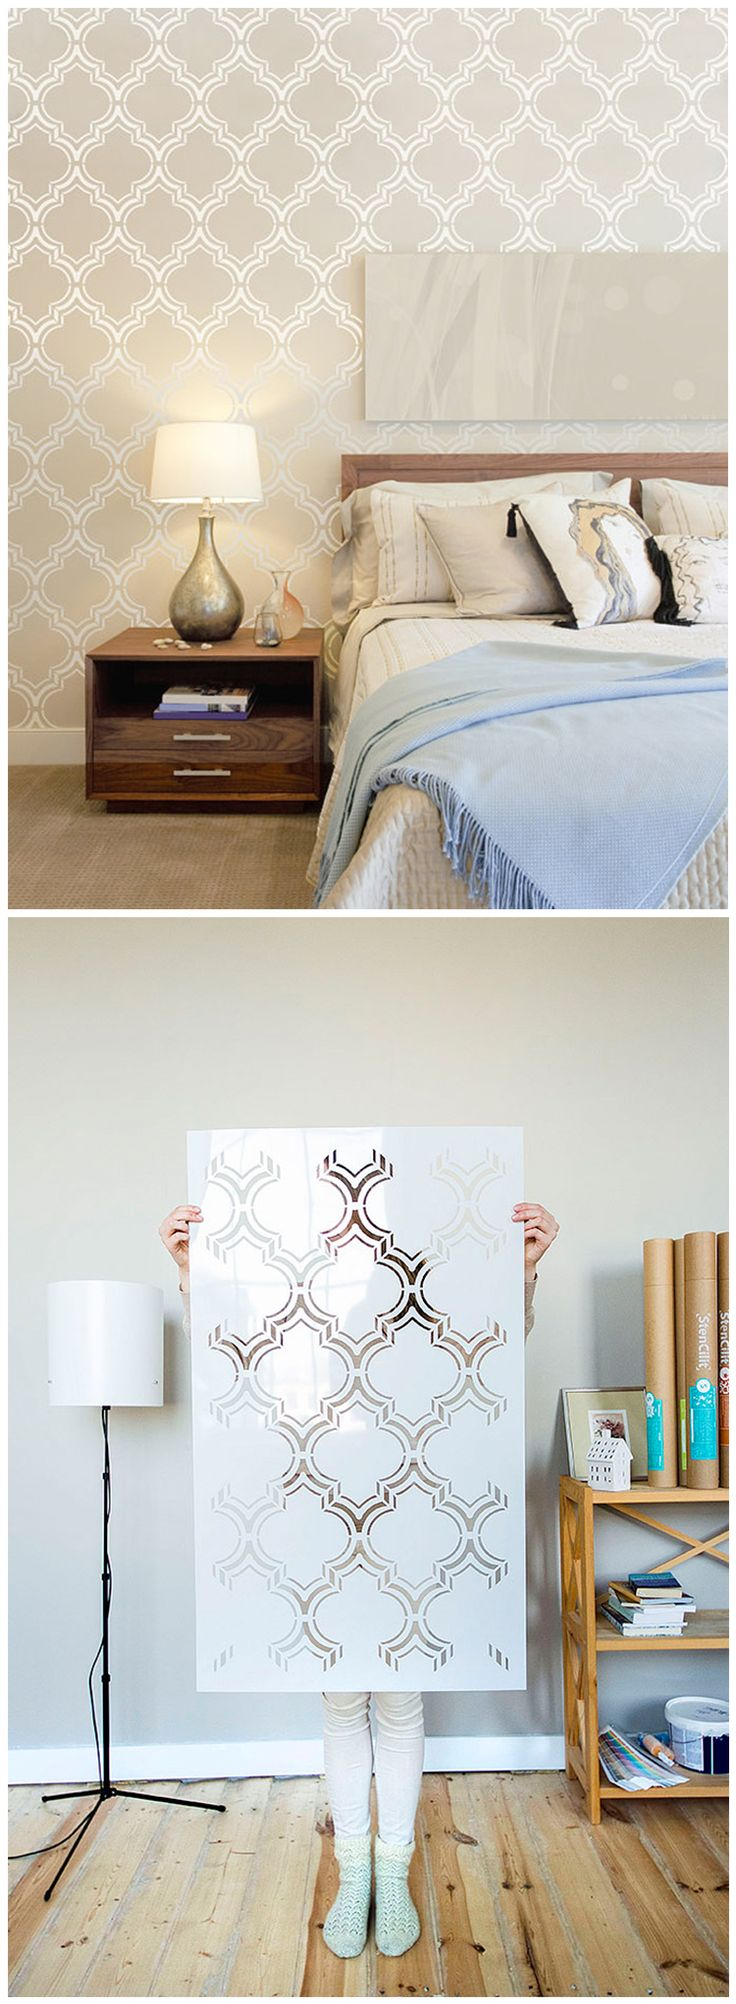 94 best wall stencils images on pinterest wall stenciling moroccan double wall stencil by stencilit moroccan wallstencil homedecor stencilit amipublicfo Image collections